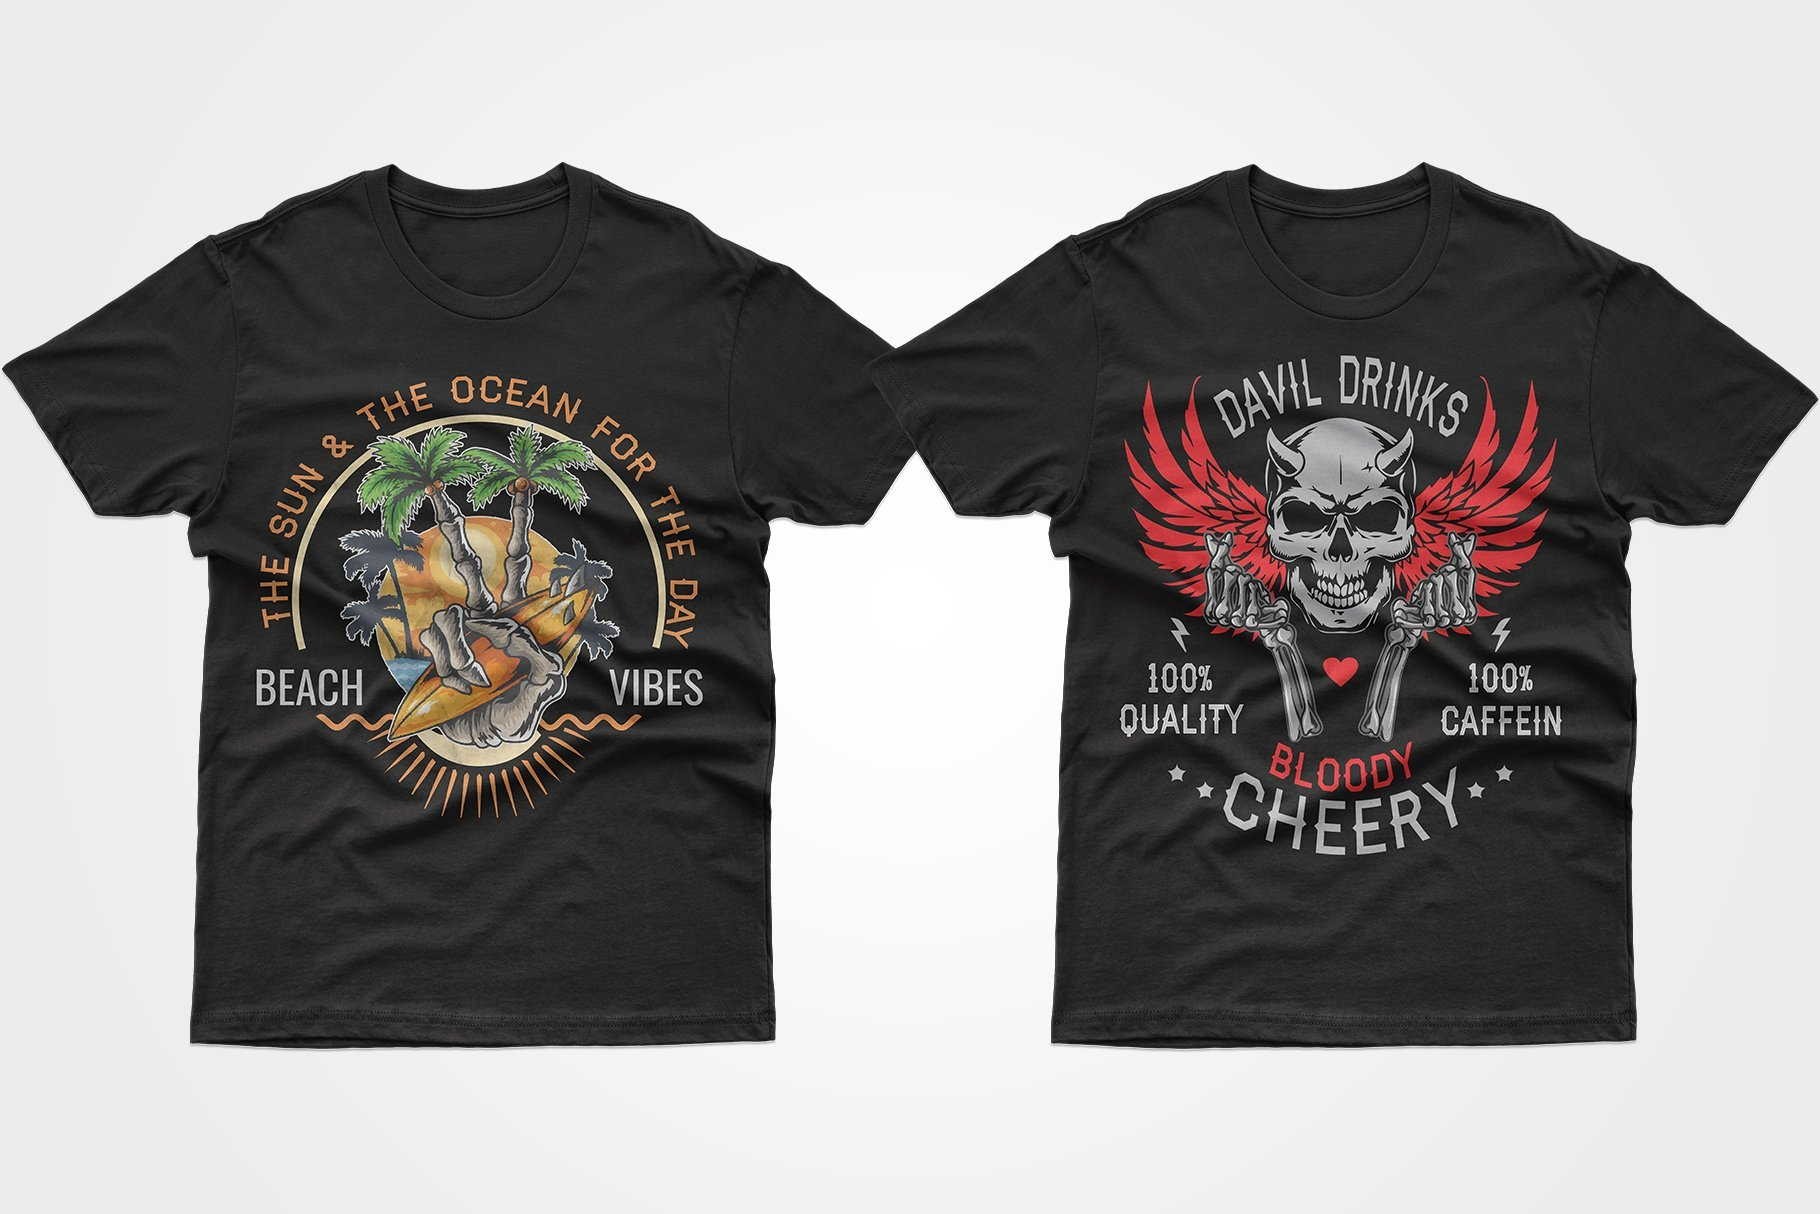 Two black T-shirts - one with a picture of the island, the other with a skull with red wings.